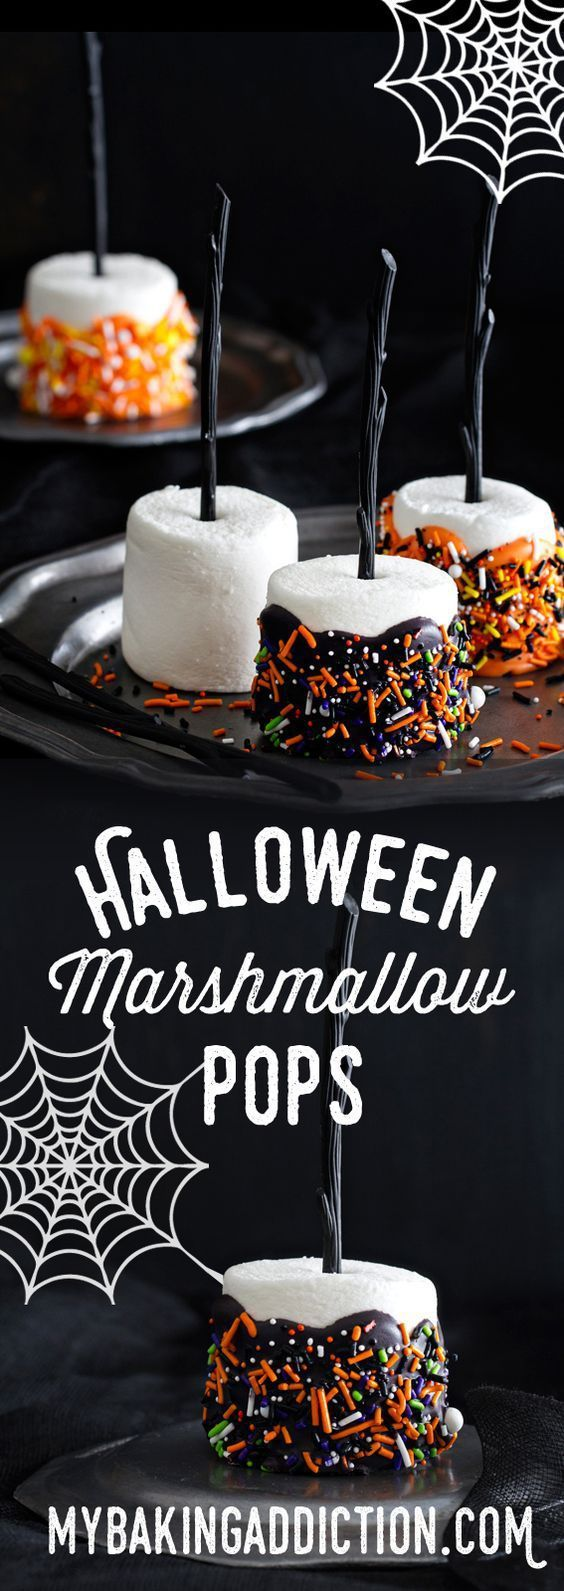 Halloween Party Treats Appetizers and Desserts Recipes - Halloween Marshmallow Pops Handheld Treats Recipe